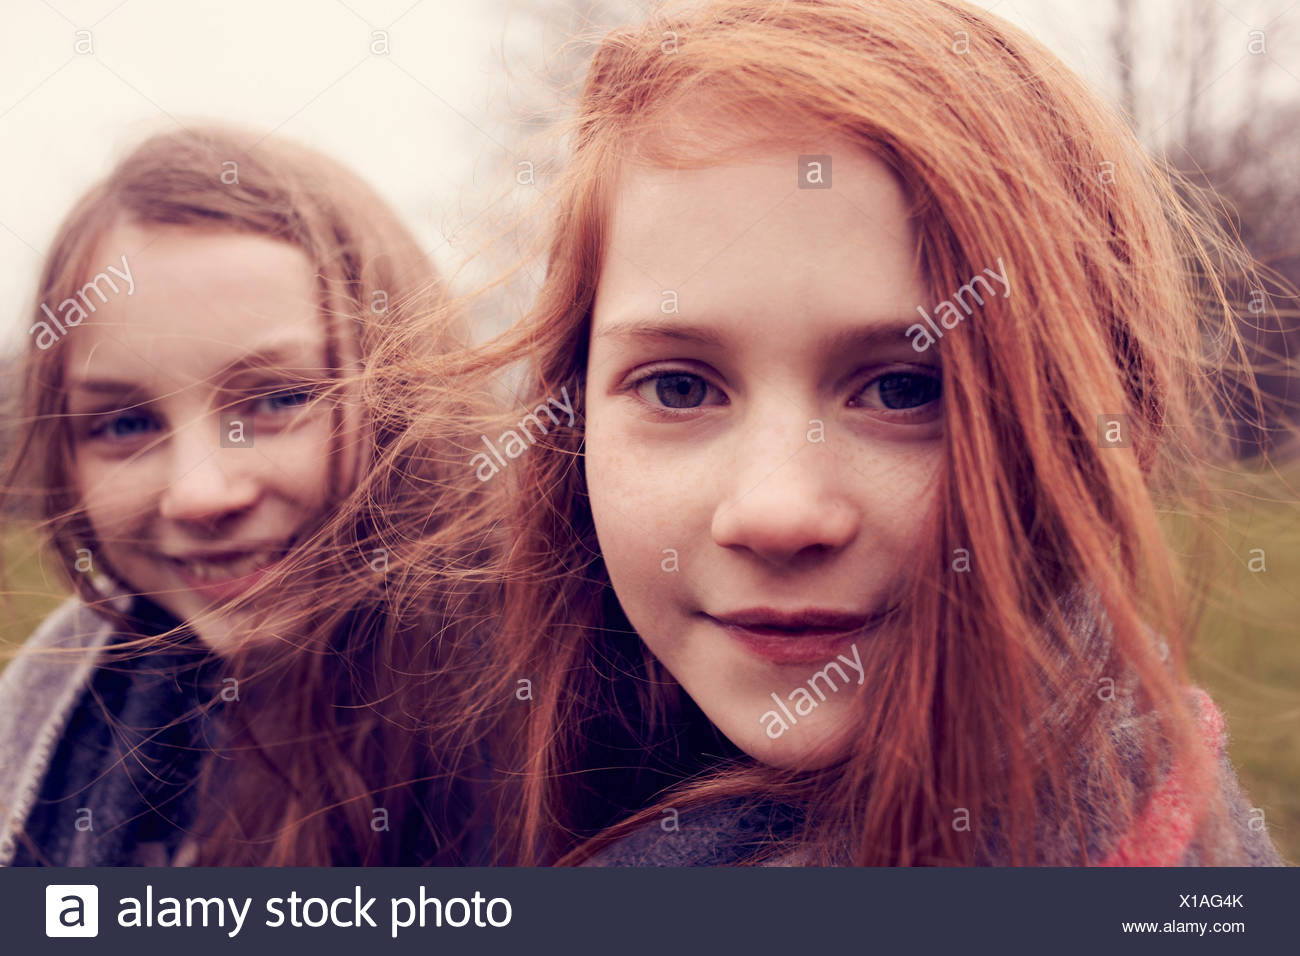 Portrait of girls wrapped in a blanket outdoors, smiling - Stock Image